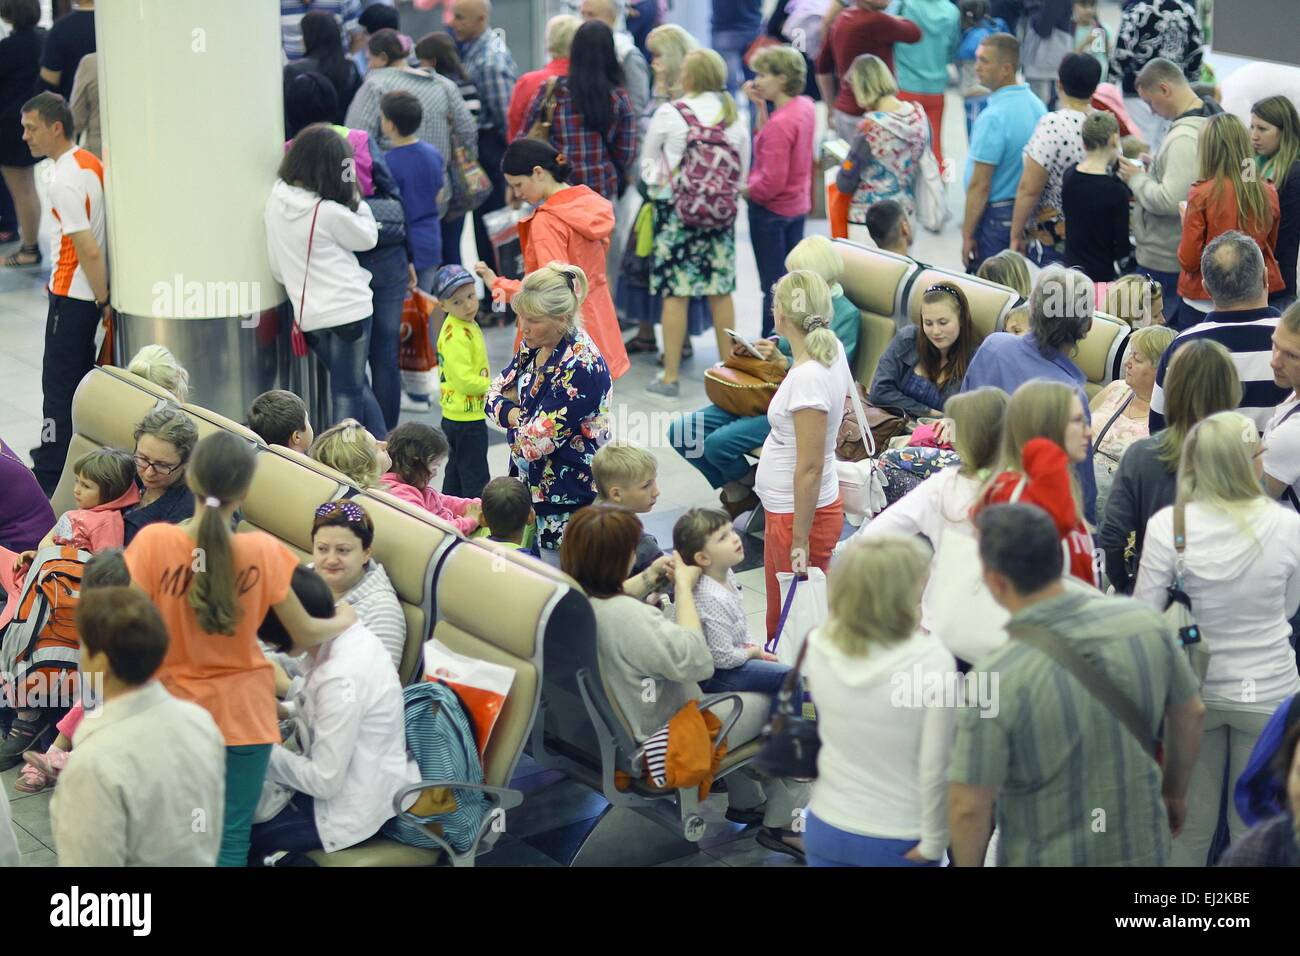 Moscow, RUSSIA – JUNE 13: passengers are expected to pick up at the airport Sheremetyevo-2, the check in baggage - Stock Image